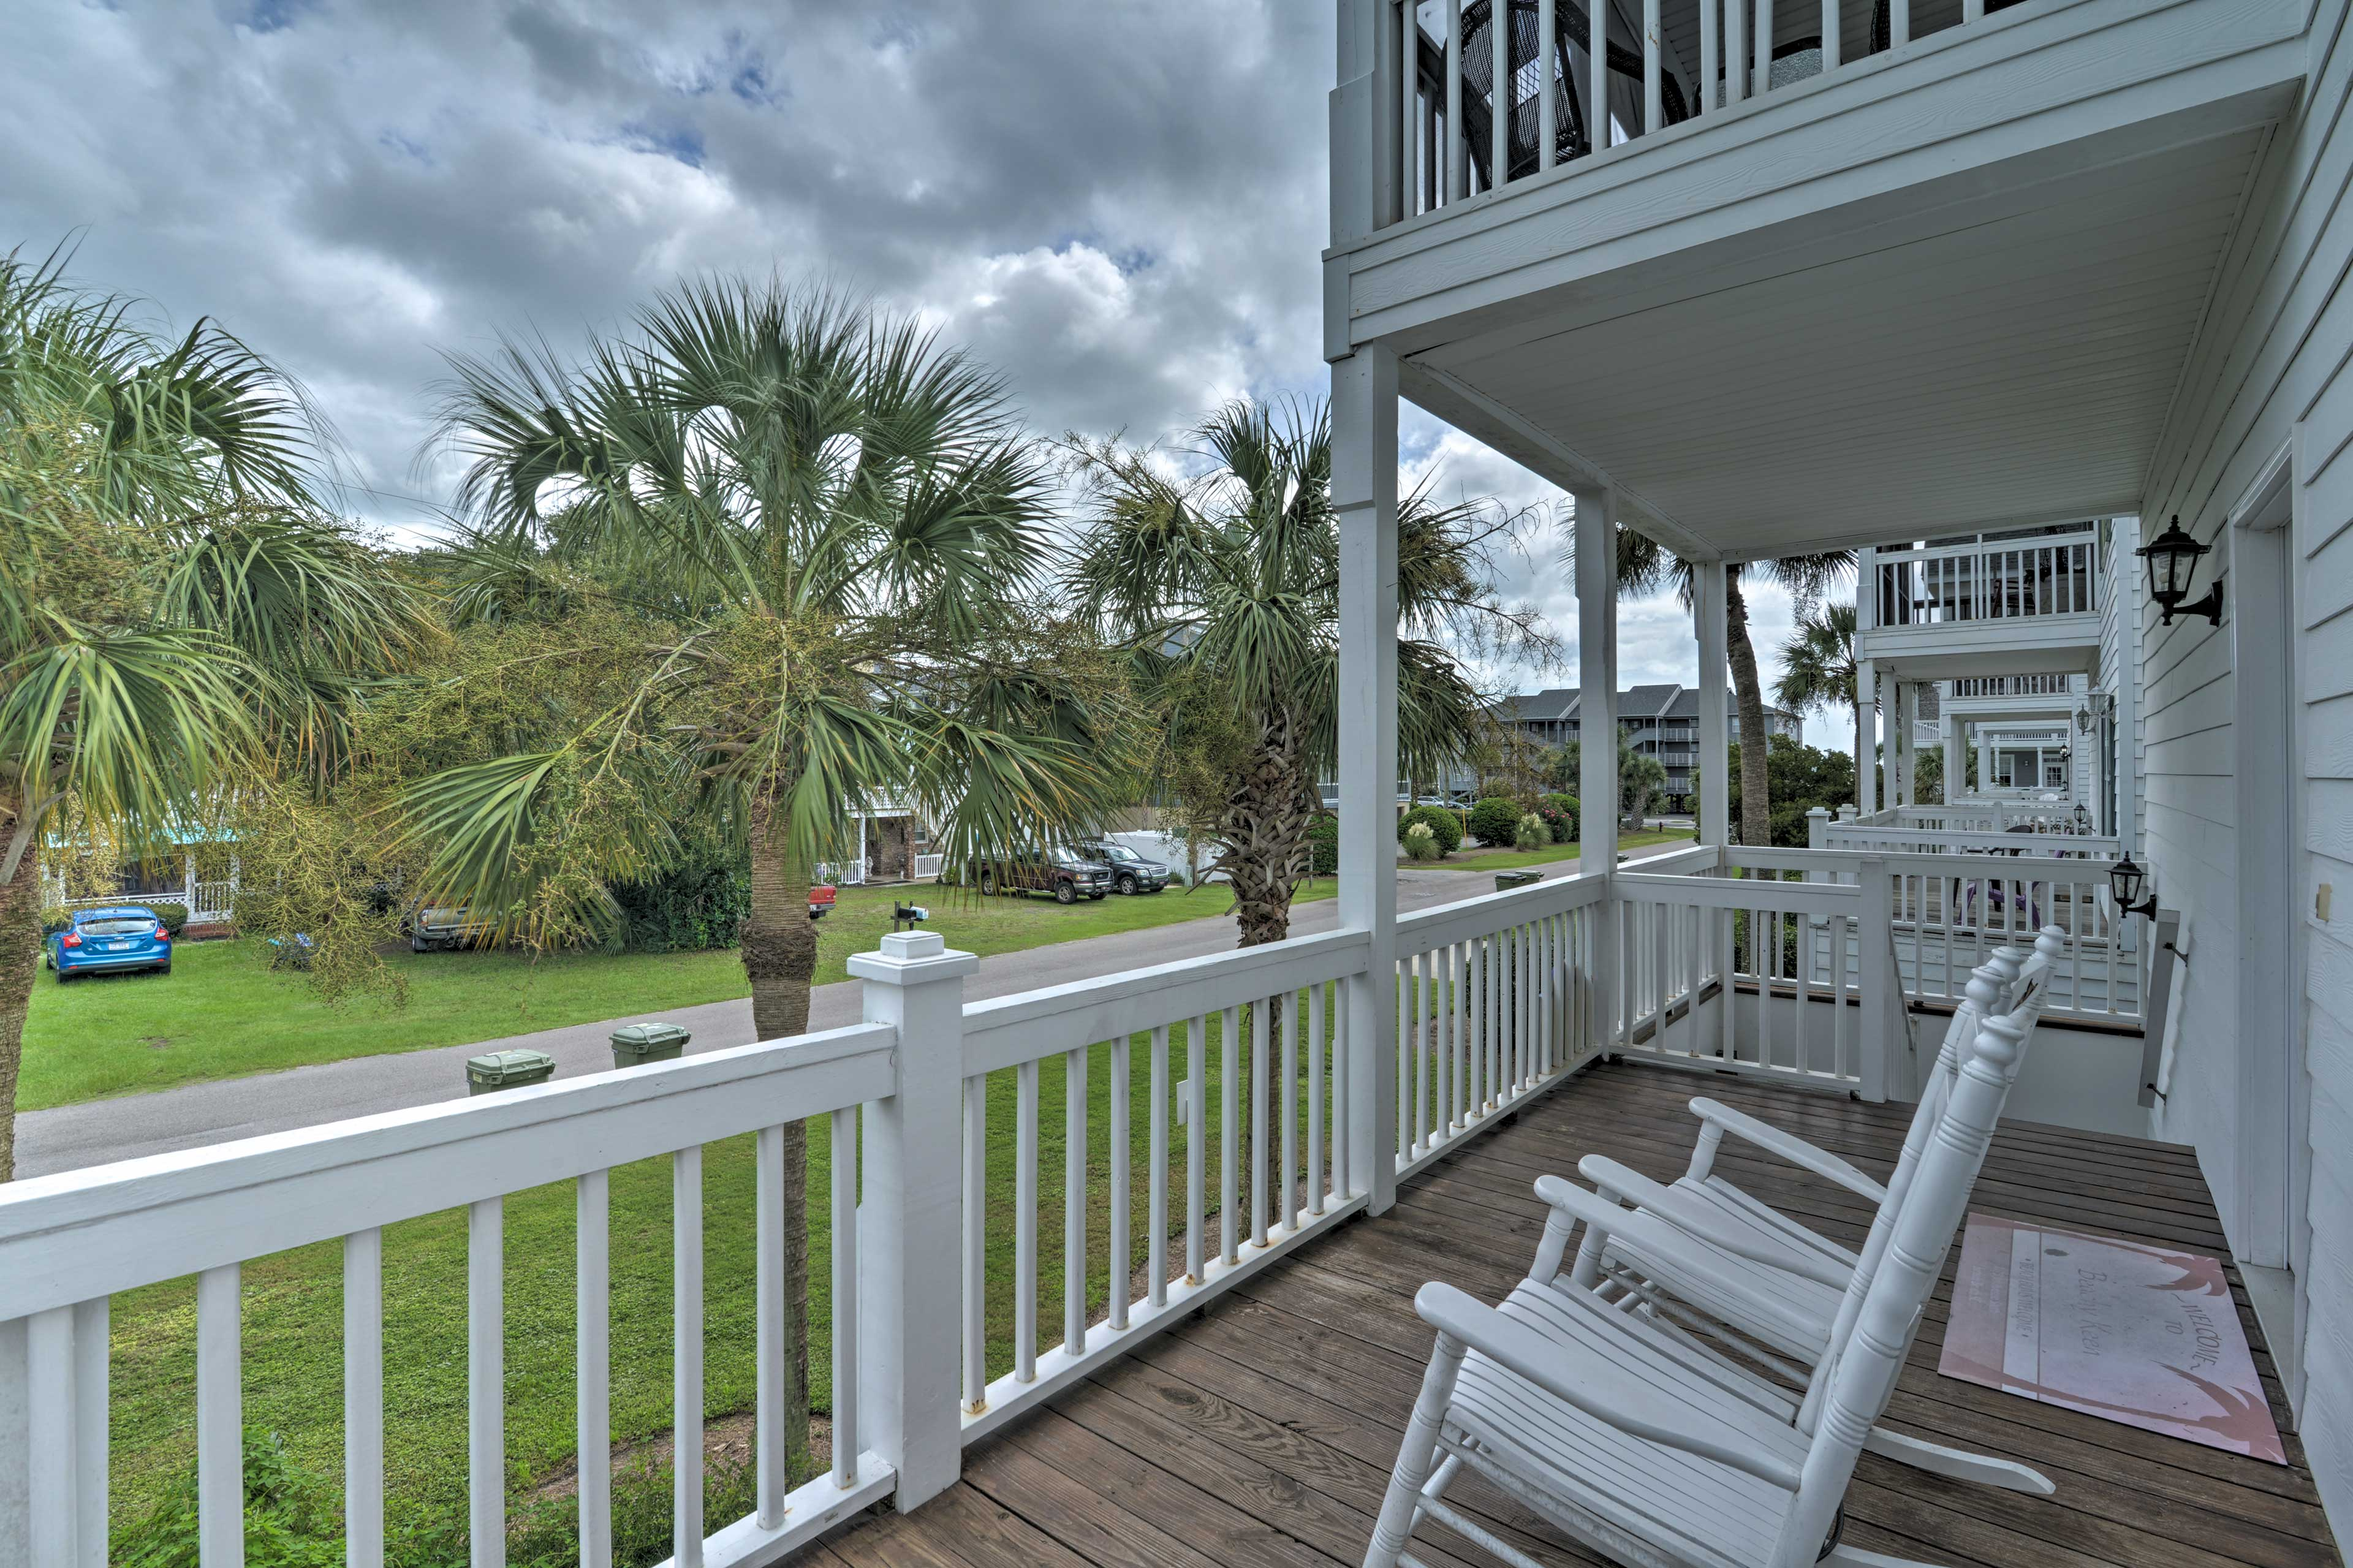 Grab your towel and head to the beach - just a block from this home.